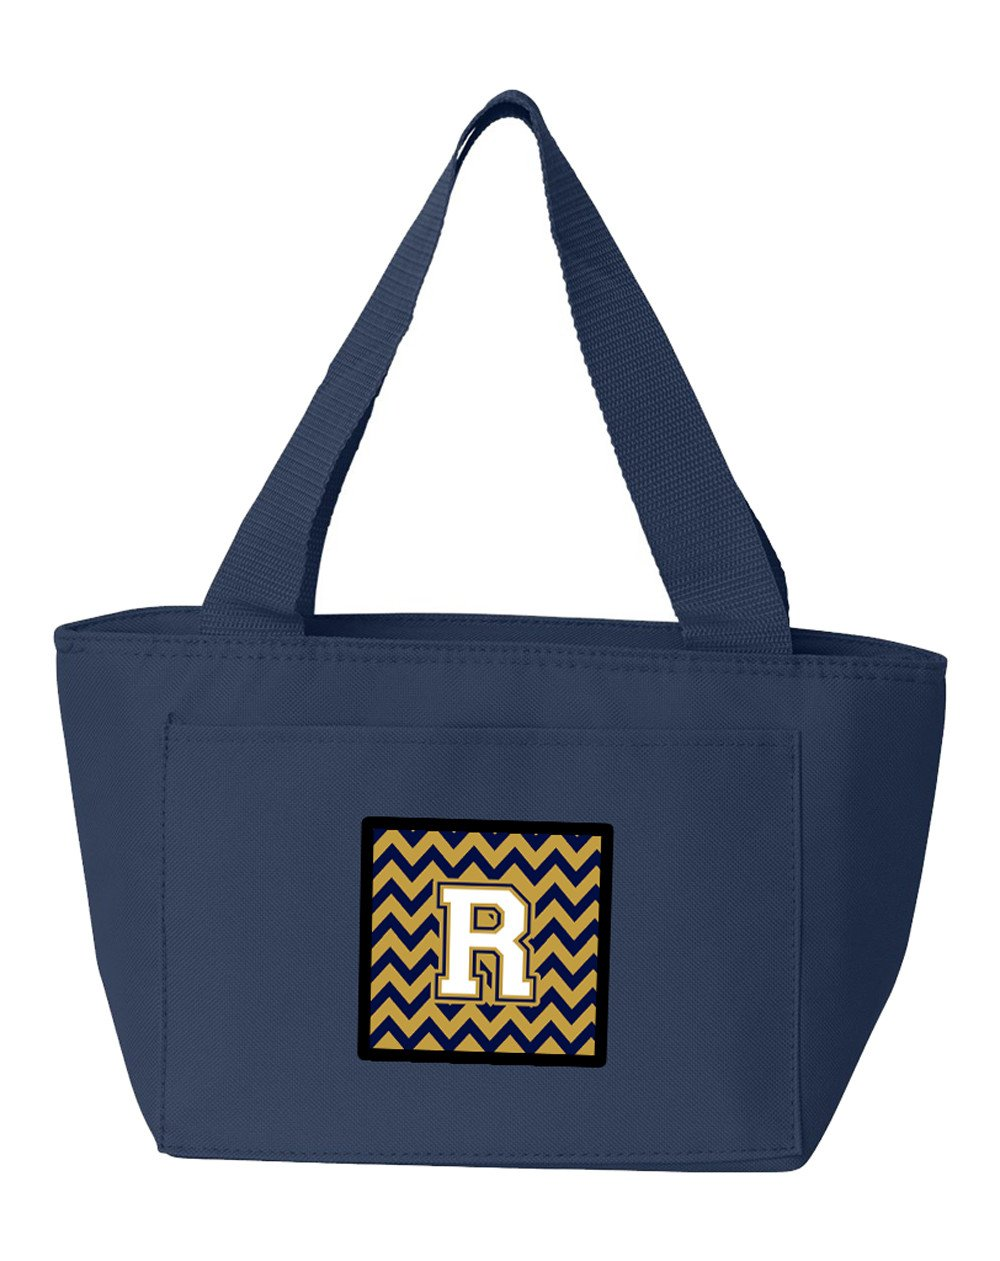 Letter R Chevron Navy Blue and Gold Lunch Bag CJ1057-RNA-8808 by Caroline's Treasures